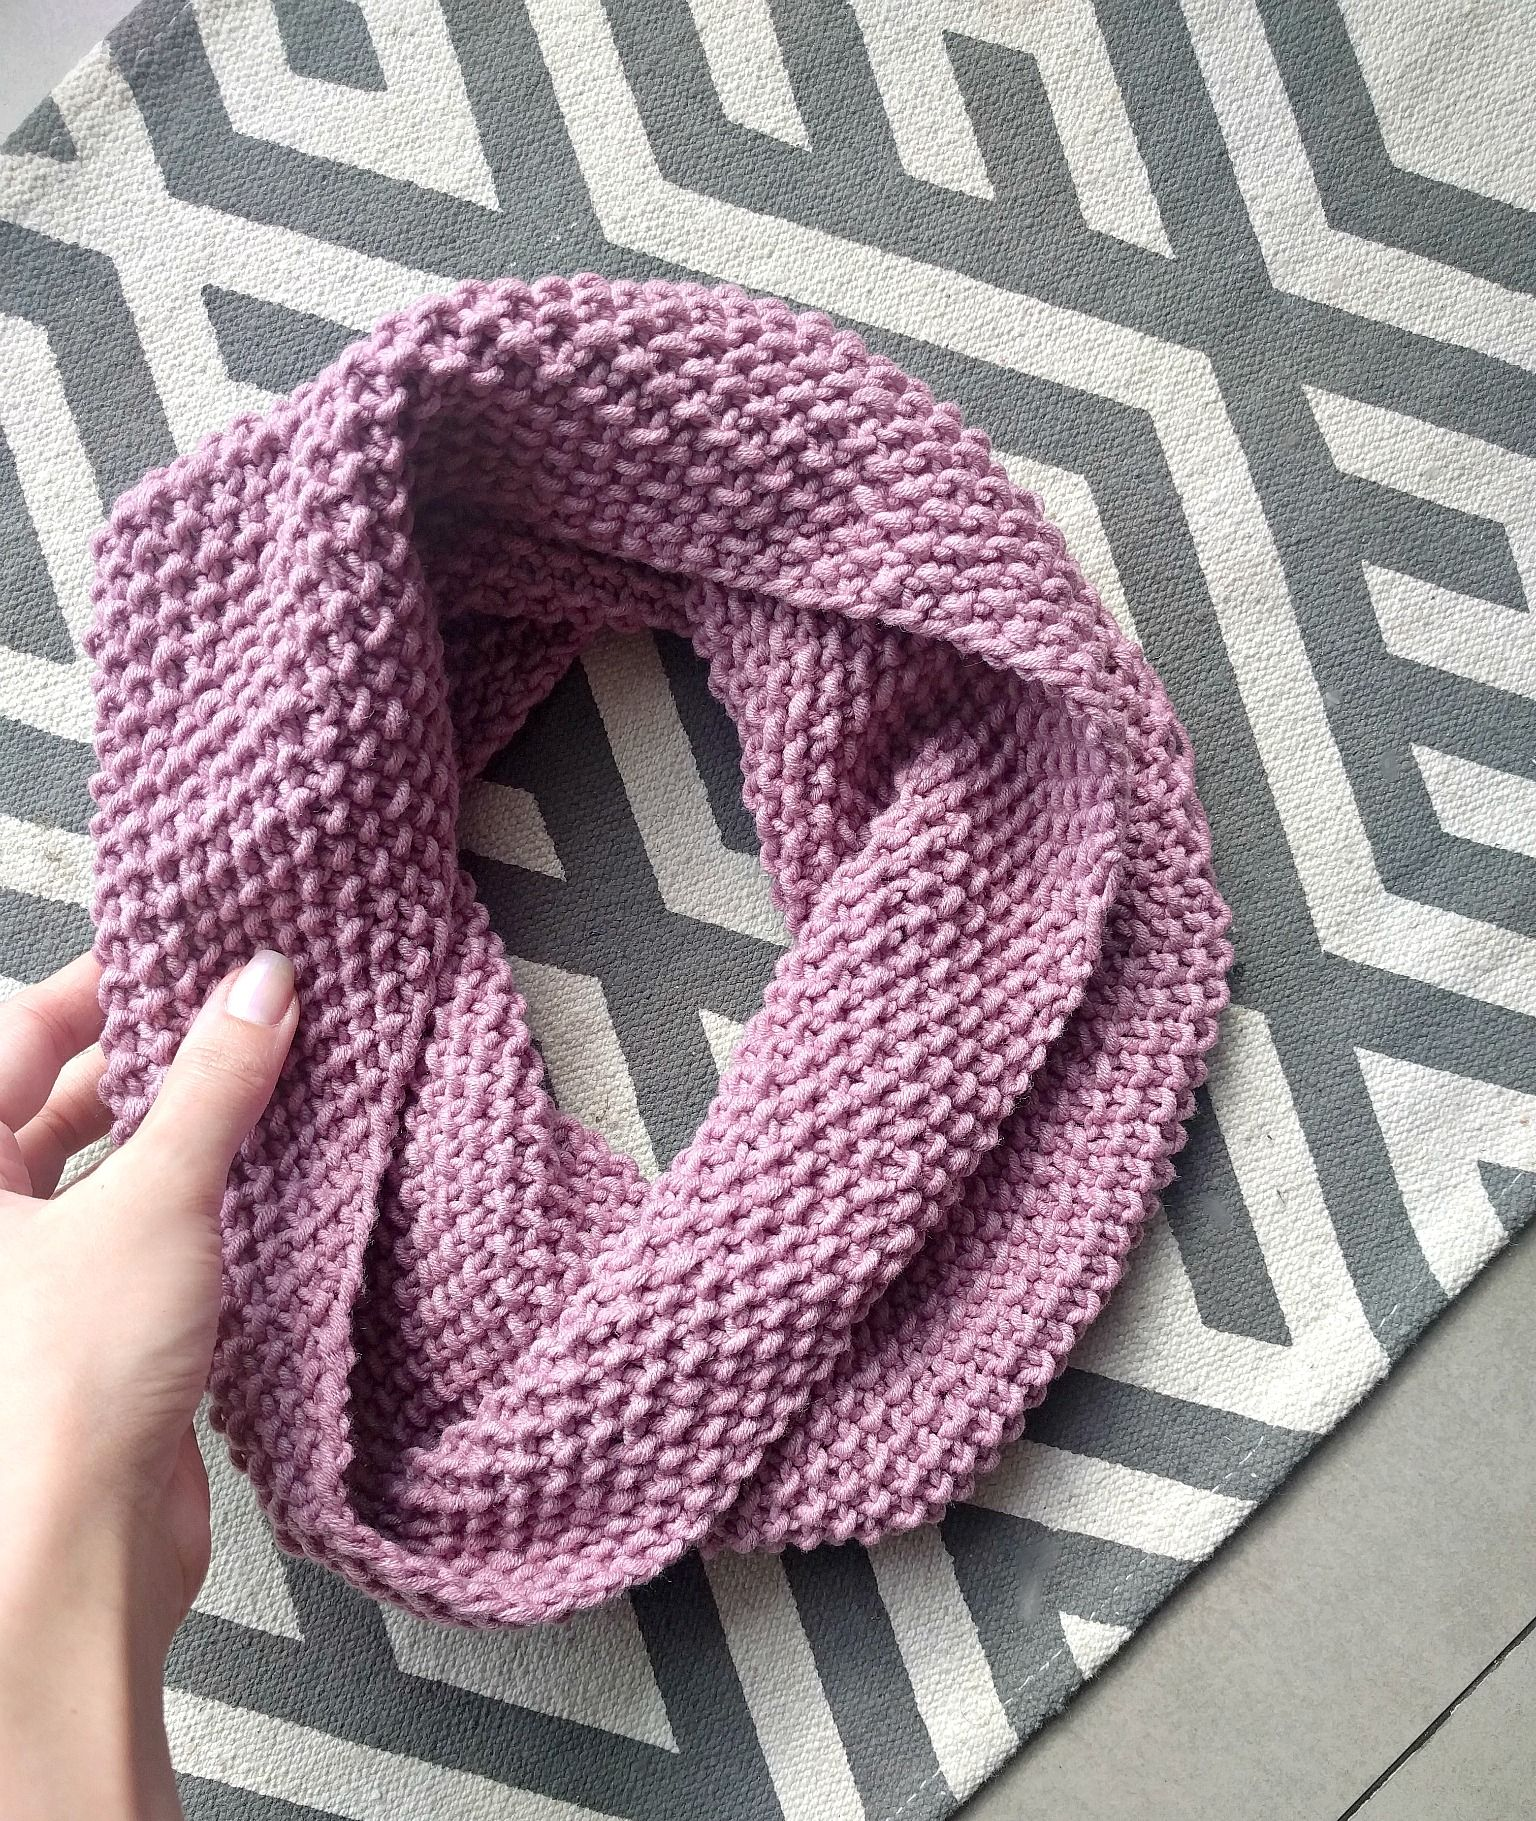 If you know how to knit and purl, you can make this scarf! Seed ...